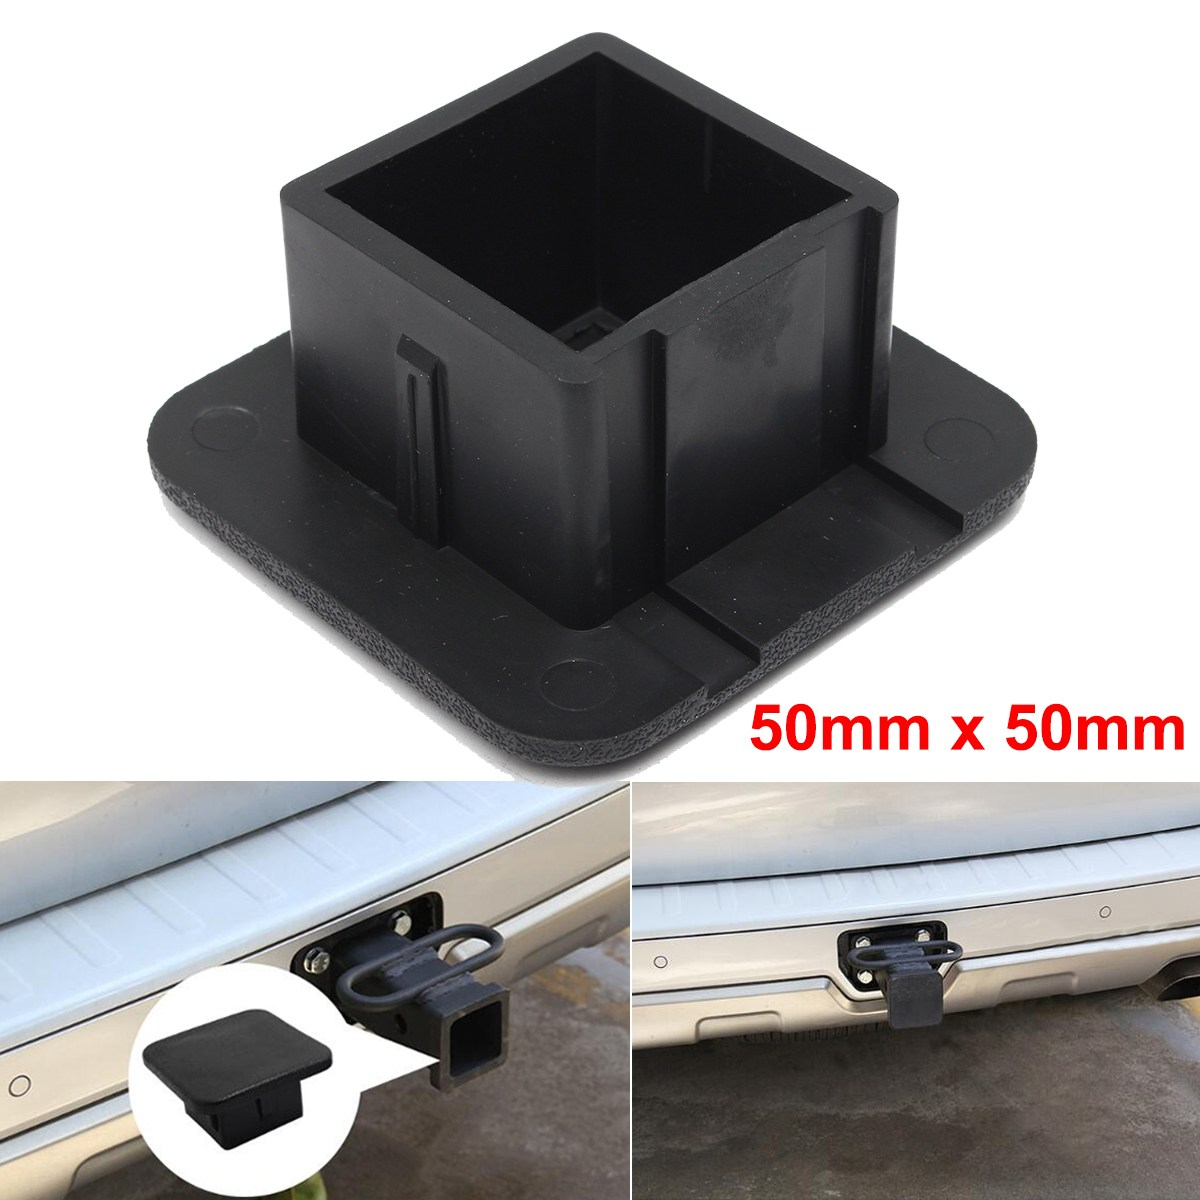 2 inch Trailer Hitch Tube Plug Receiver Cover Dust Protecter for Jeep for Ford for GMC For Toyota ...